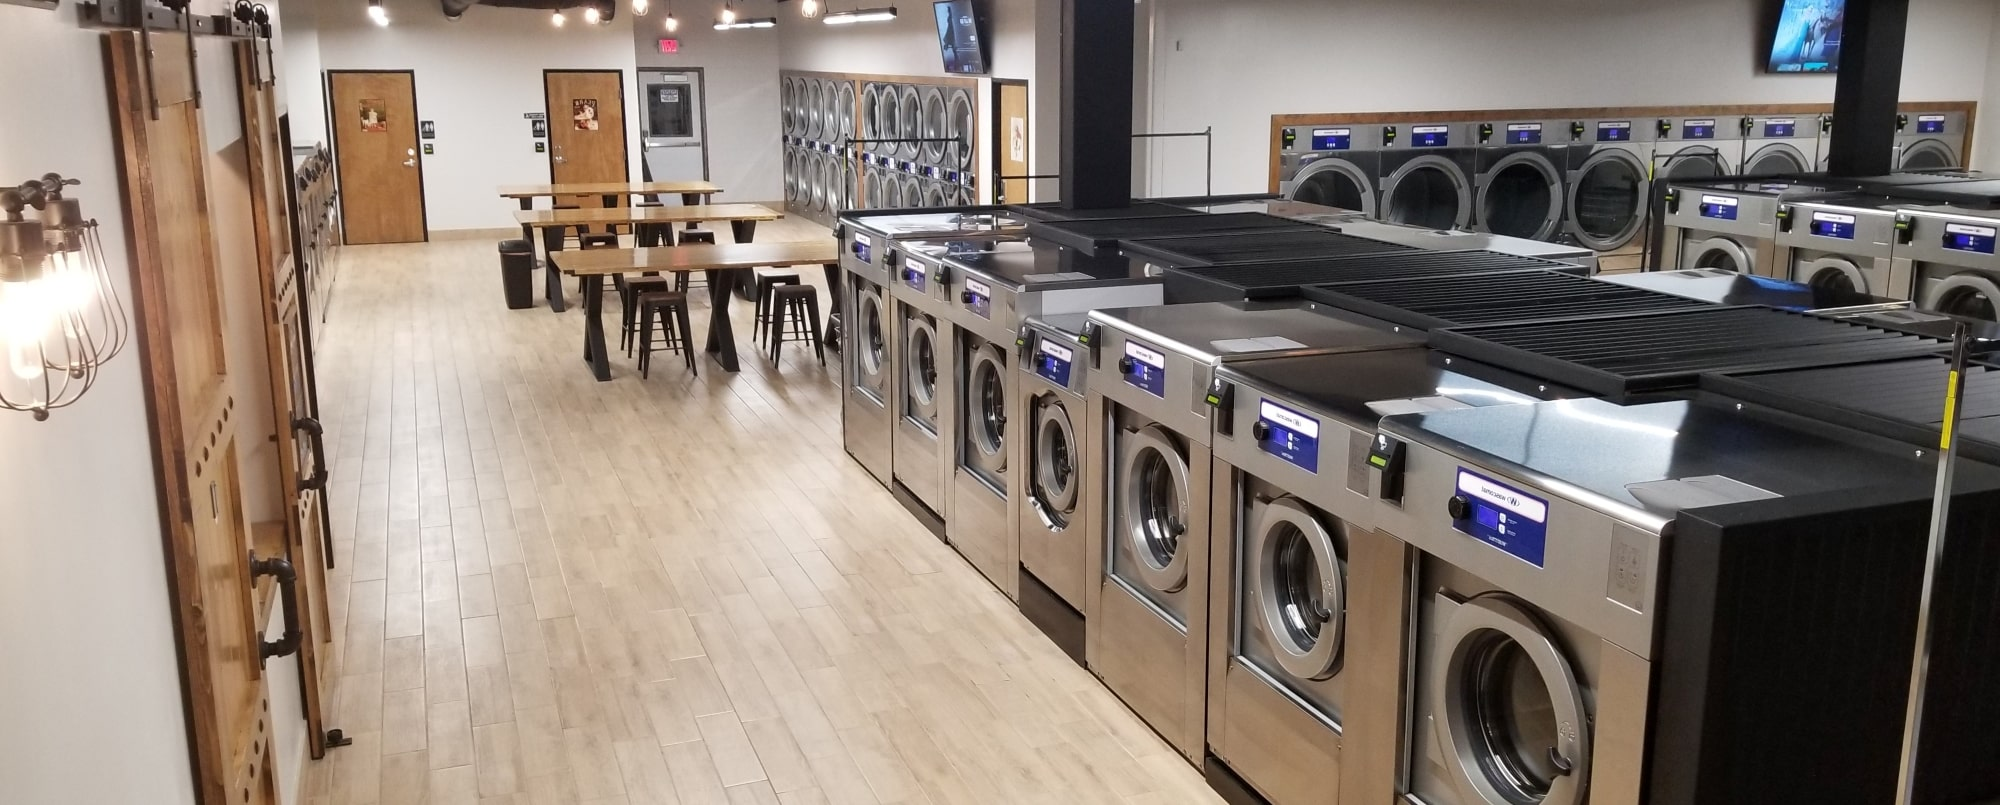 - Wash & Fold Laundromat - Commercial Laundry Service - Self Service